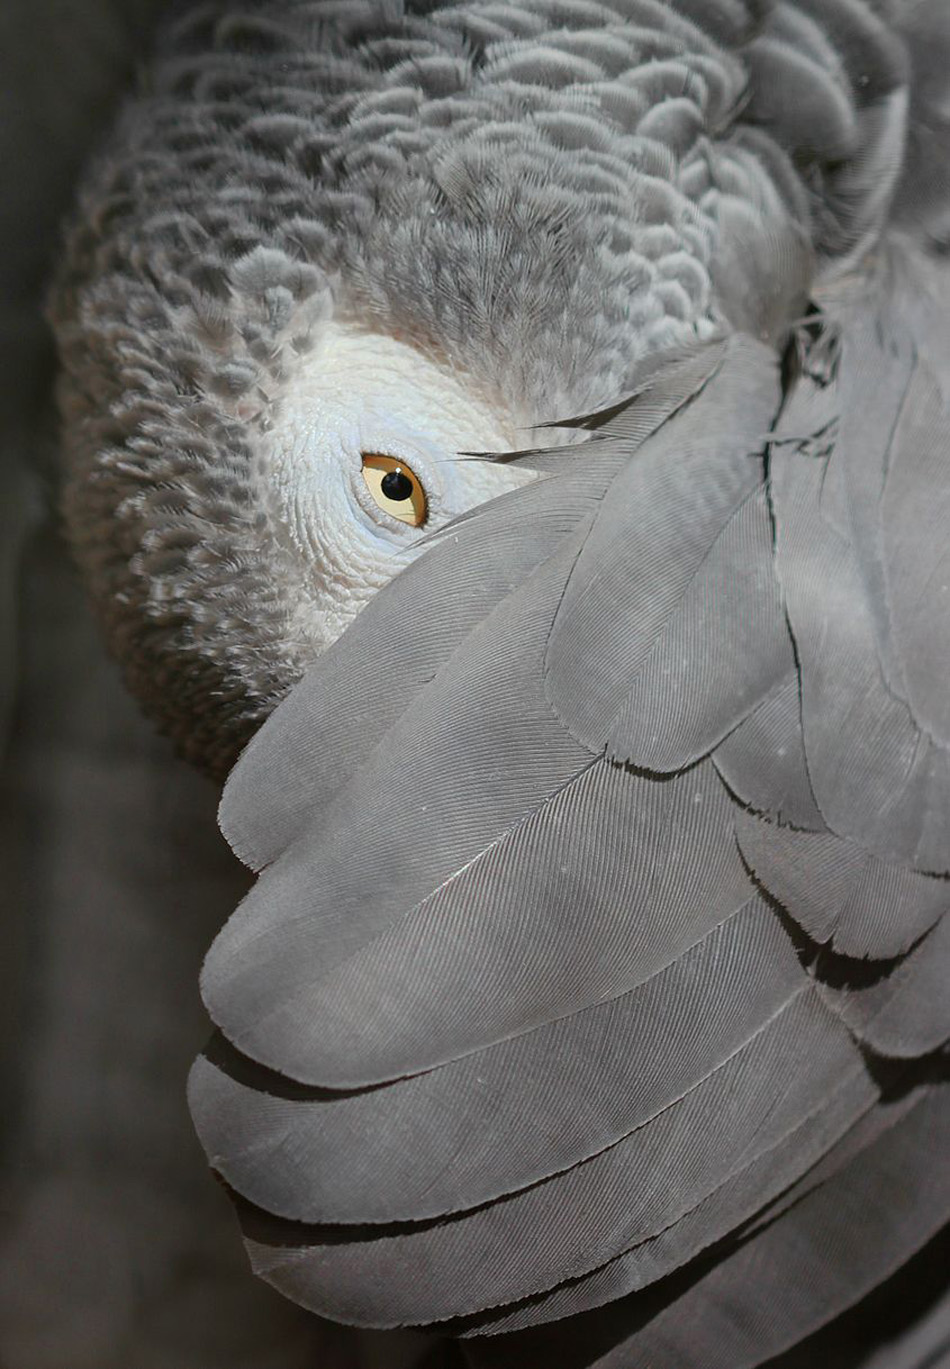 845px-African_Grey_Parrot,_peeking_out_from_under_its_wing_-_edit_3